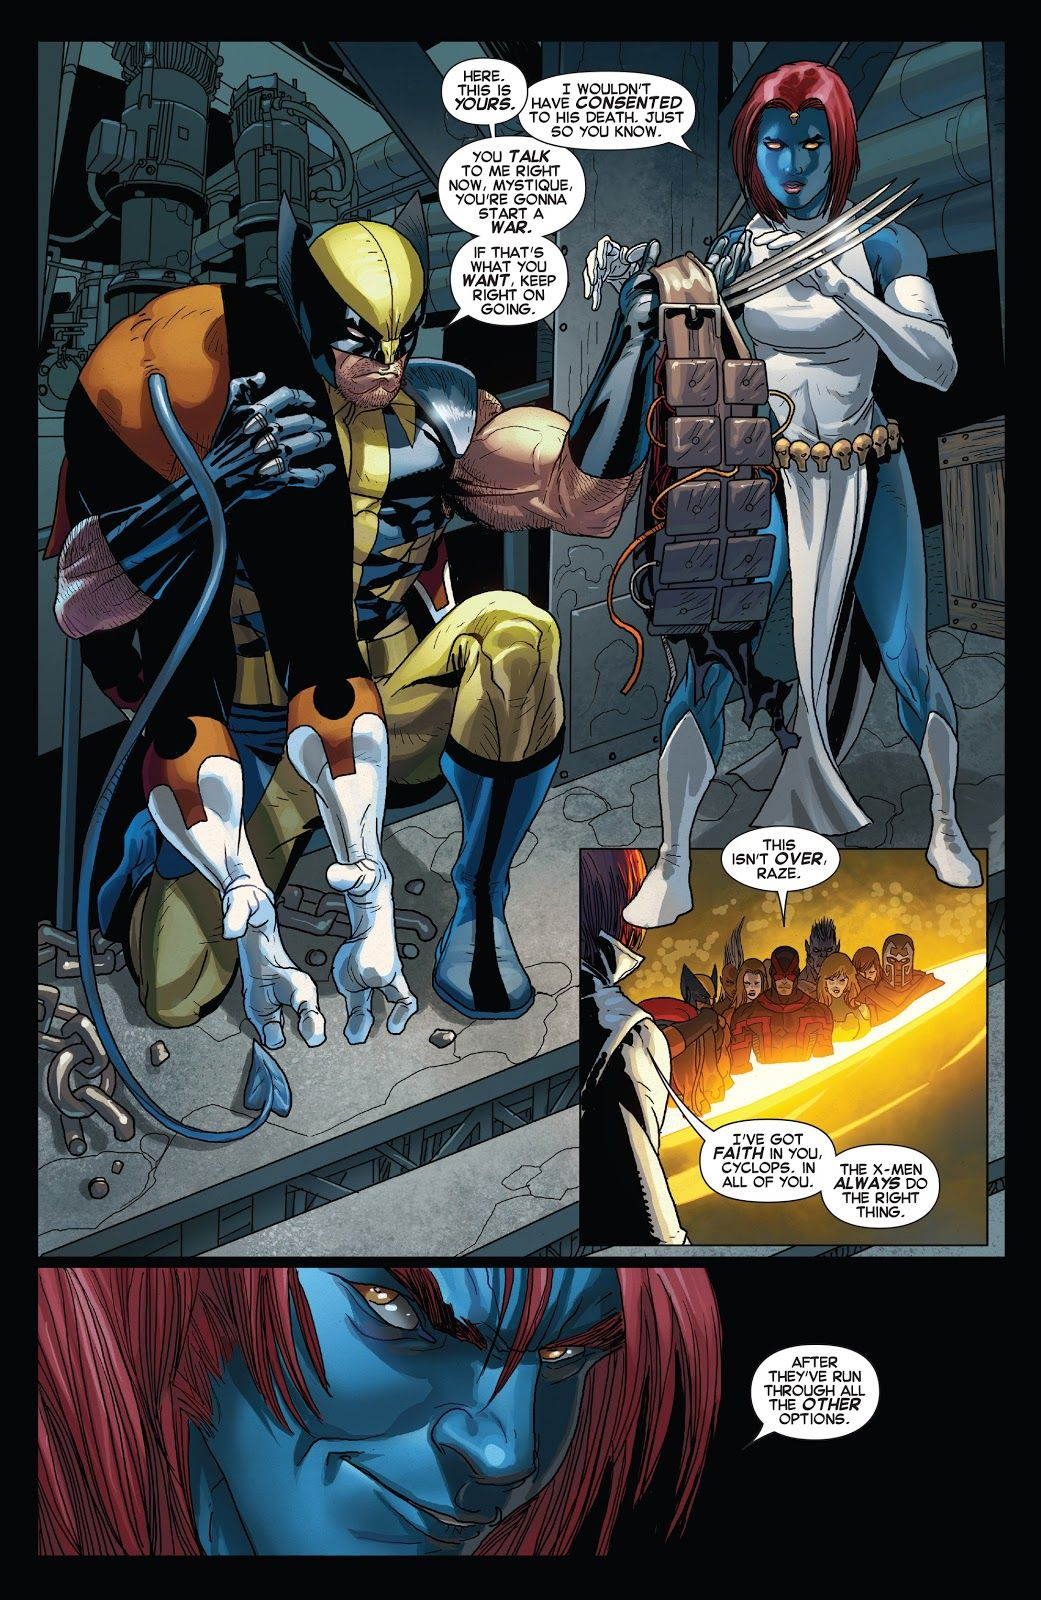 X Men No More Humans Page 49 Nightcrawler Is Captured To Lure The X Men In And Wolverine Refuses To Leave Without T Nightcrawler Comic Nightcrawler Comics